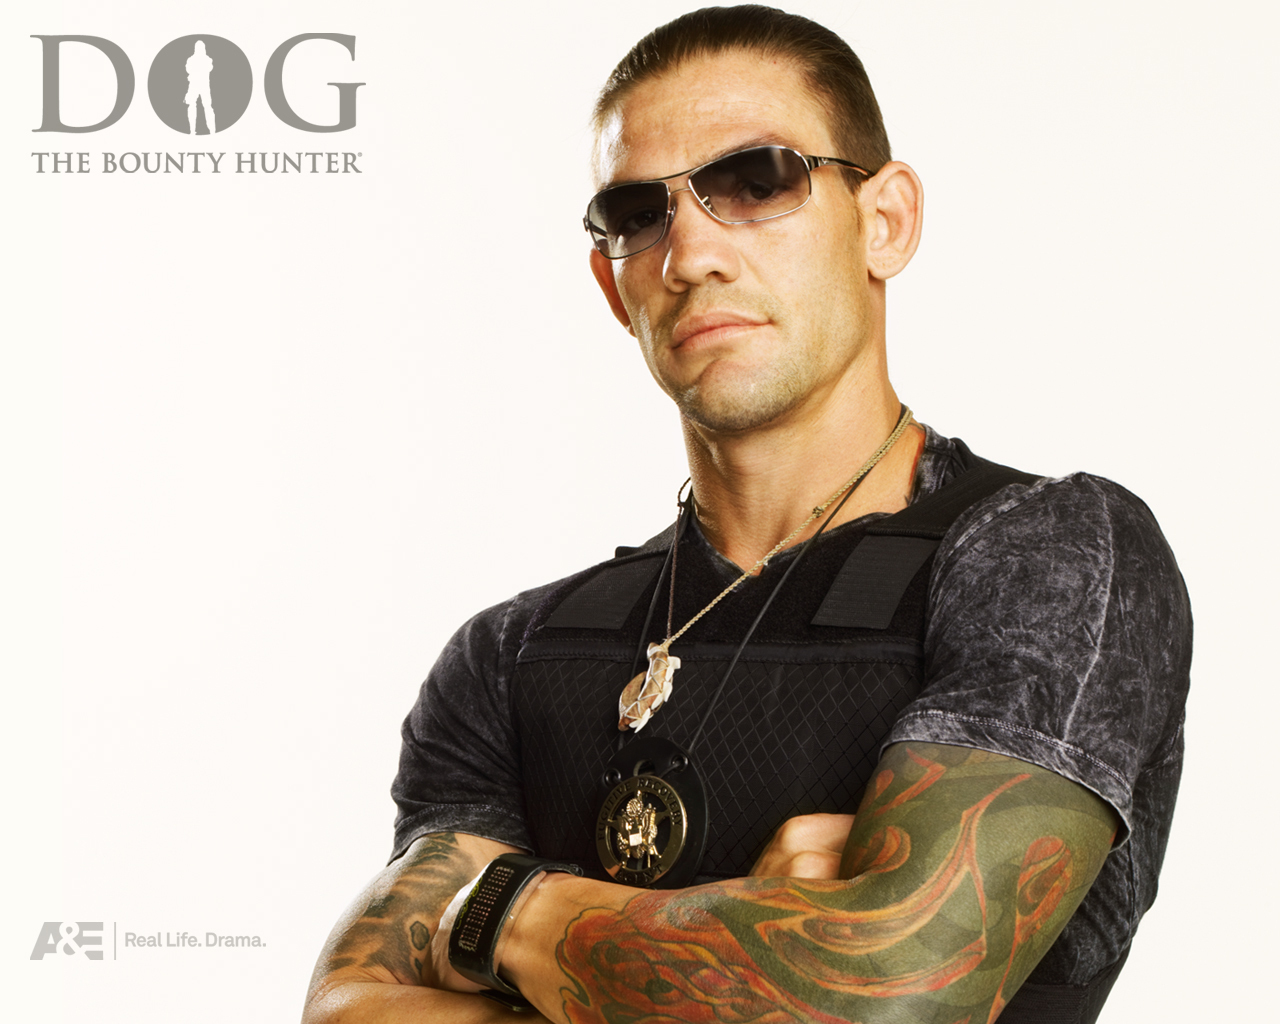 dog the bounty hunter images leland hd wallpaper and